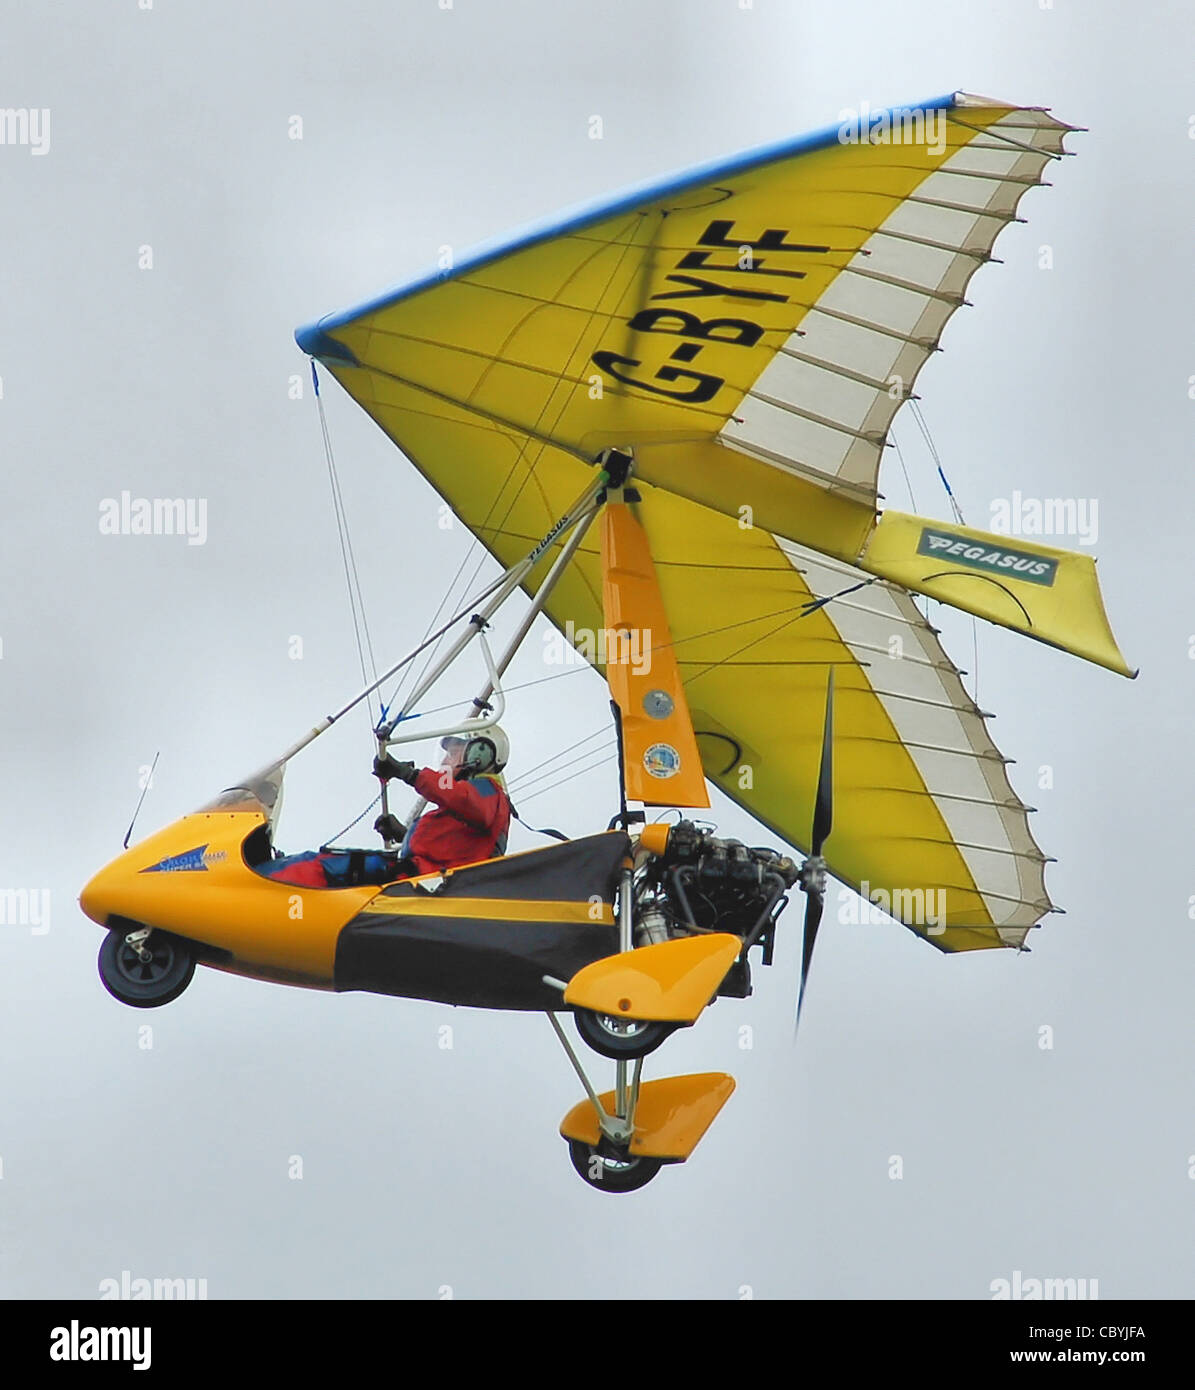 Pegasus Quantum 15-912 ultralight (G-BYFF), built 1999, at Kemble Air Day 2009, Kemble, Gloucestershire, England. - Stock Image